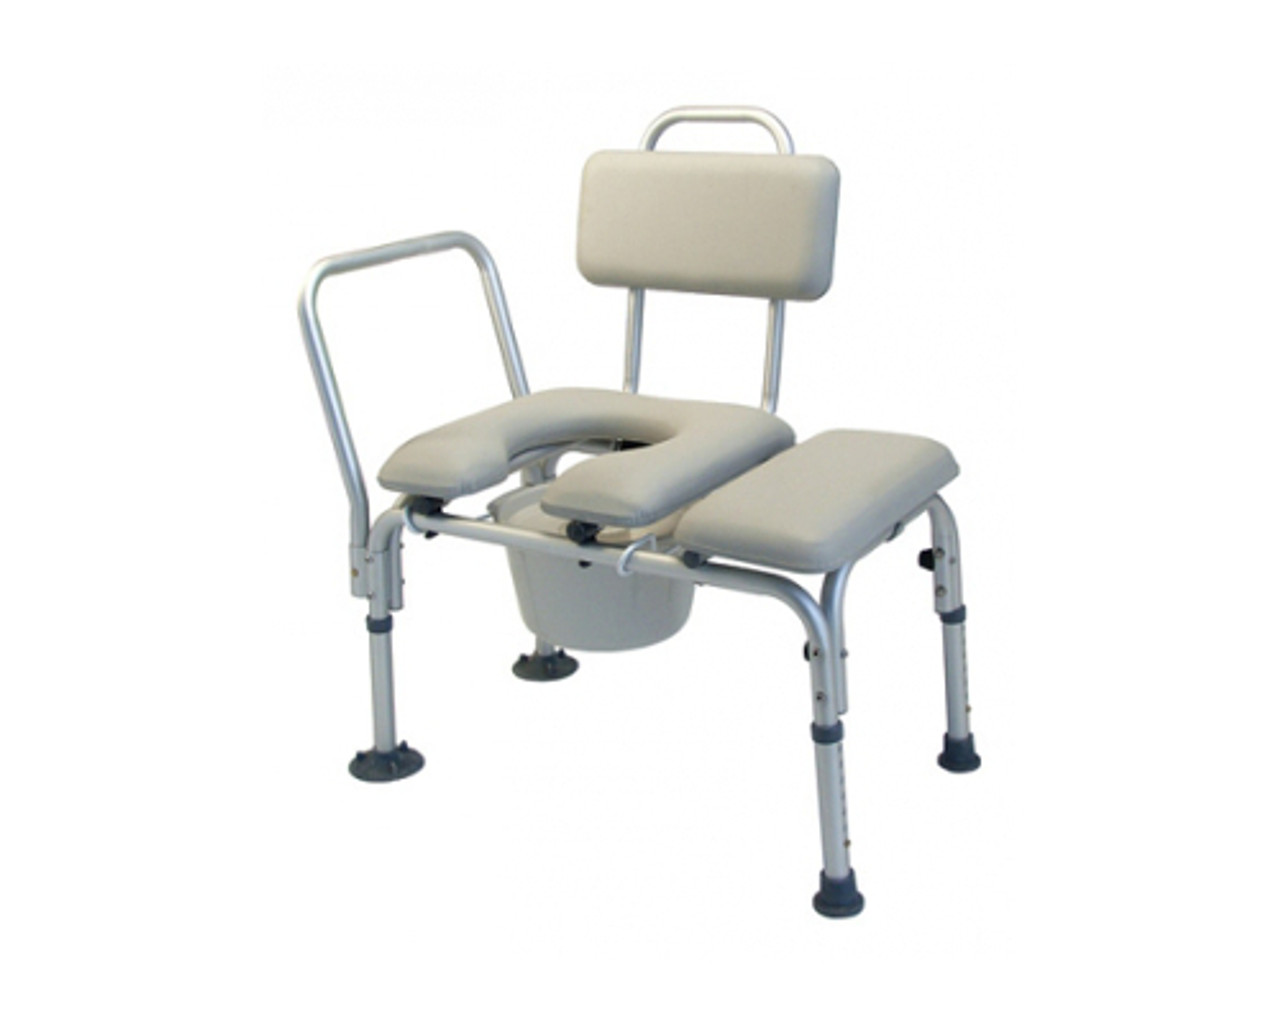 Drive Commode Padded Transfer Bench With Backrest